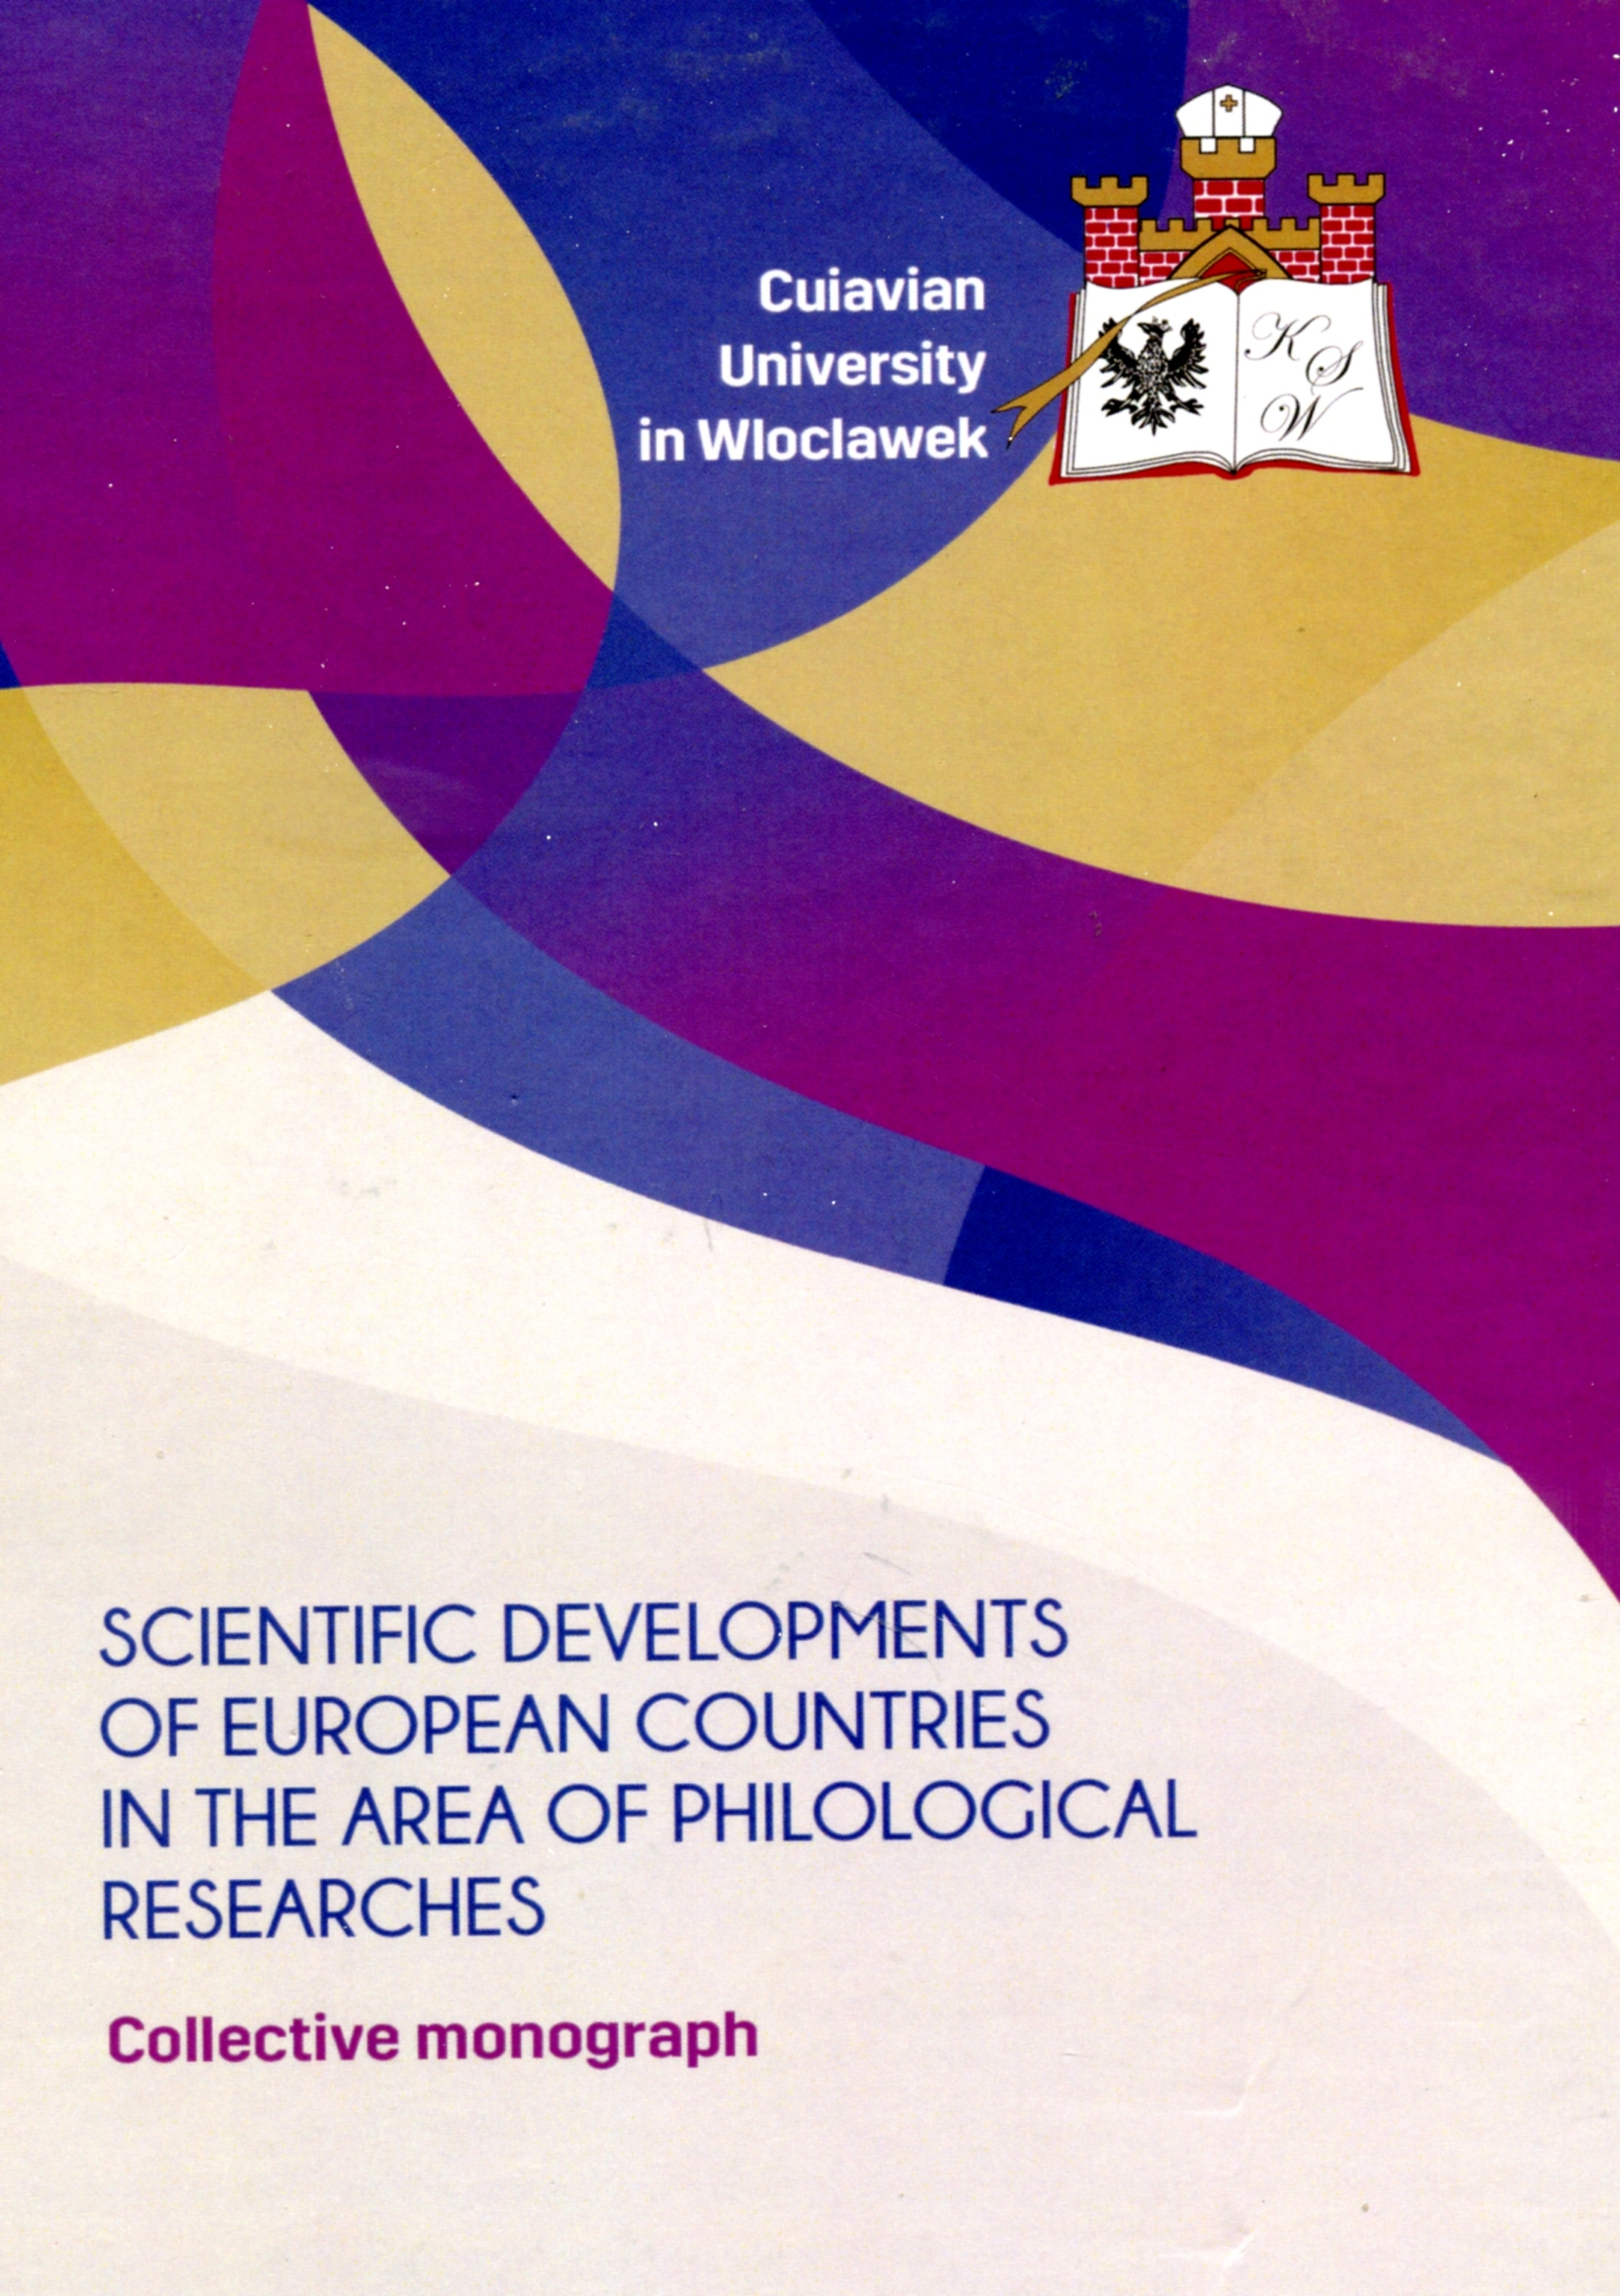 Scientific developments of European countries in the area of philological researches